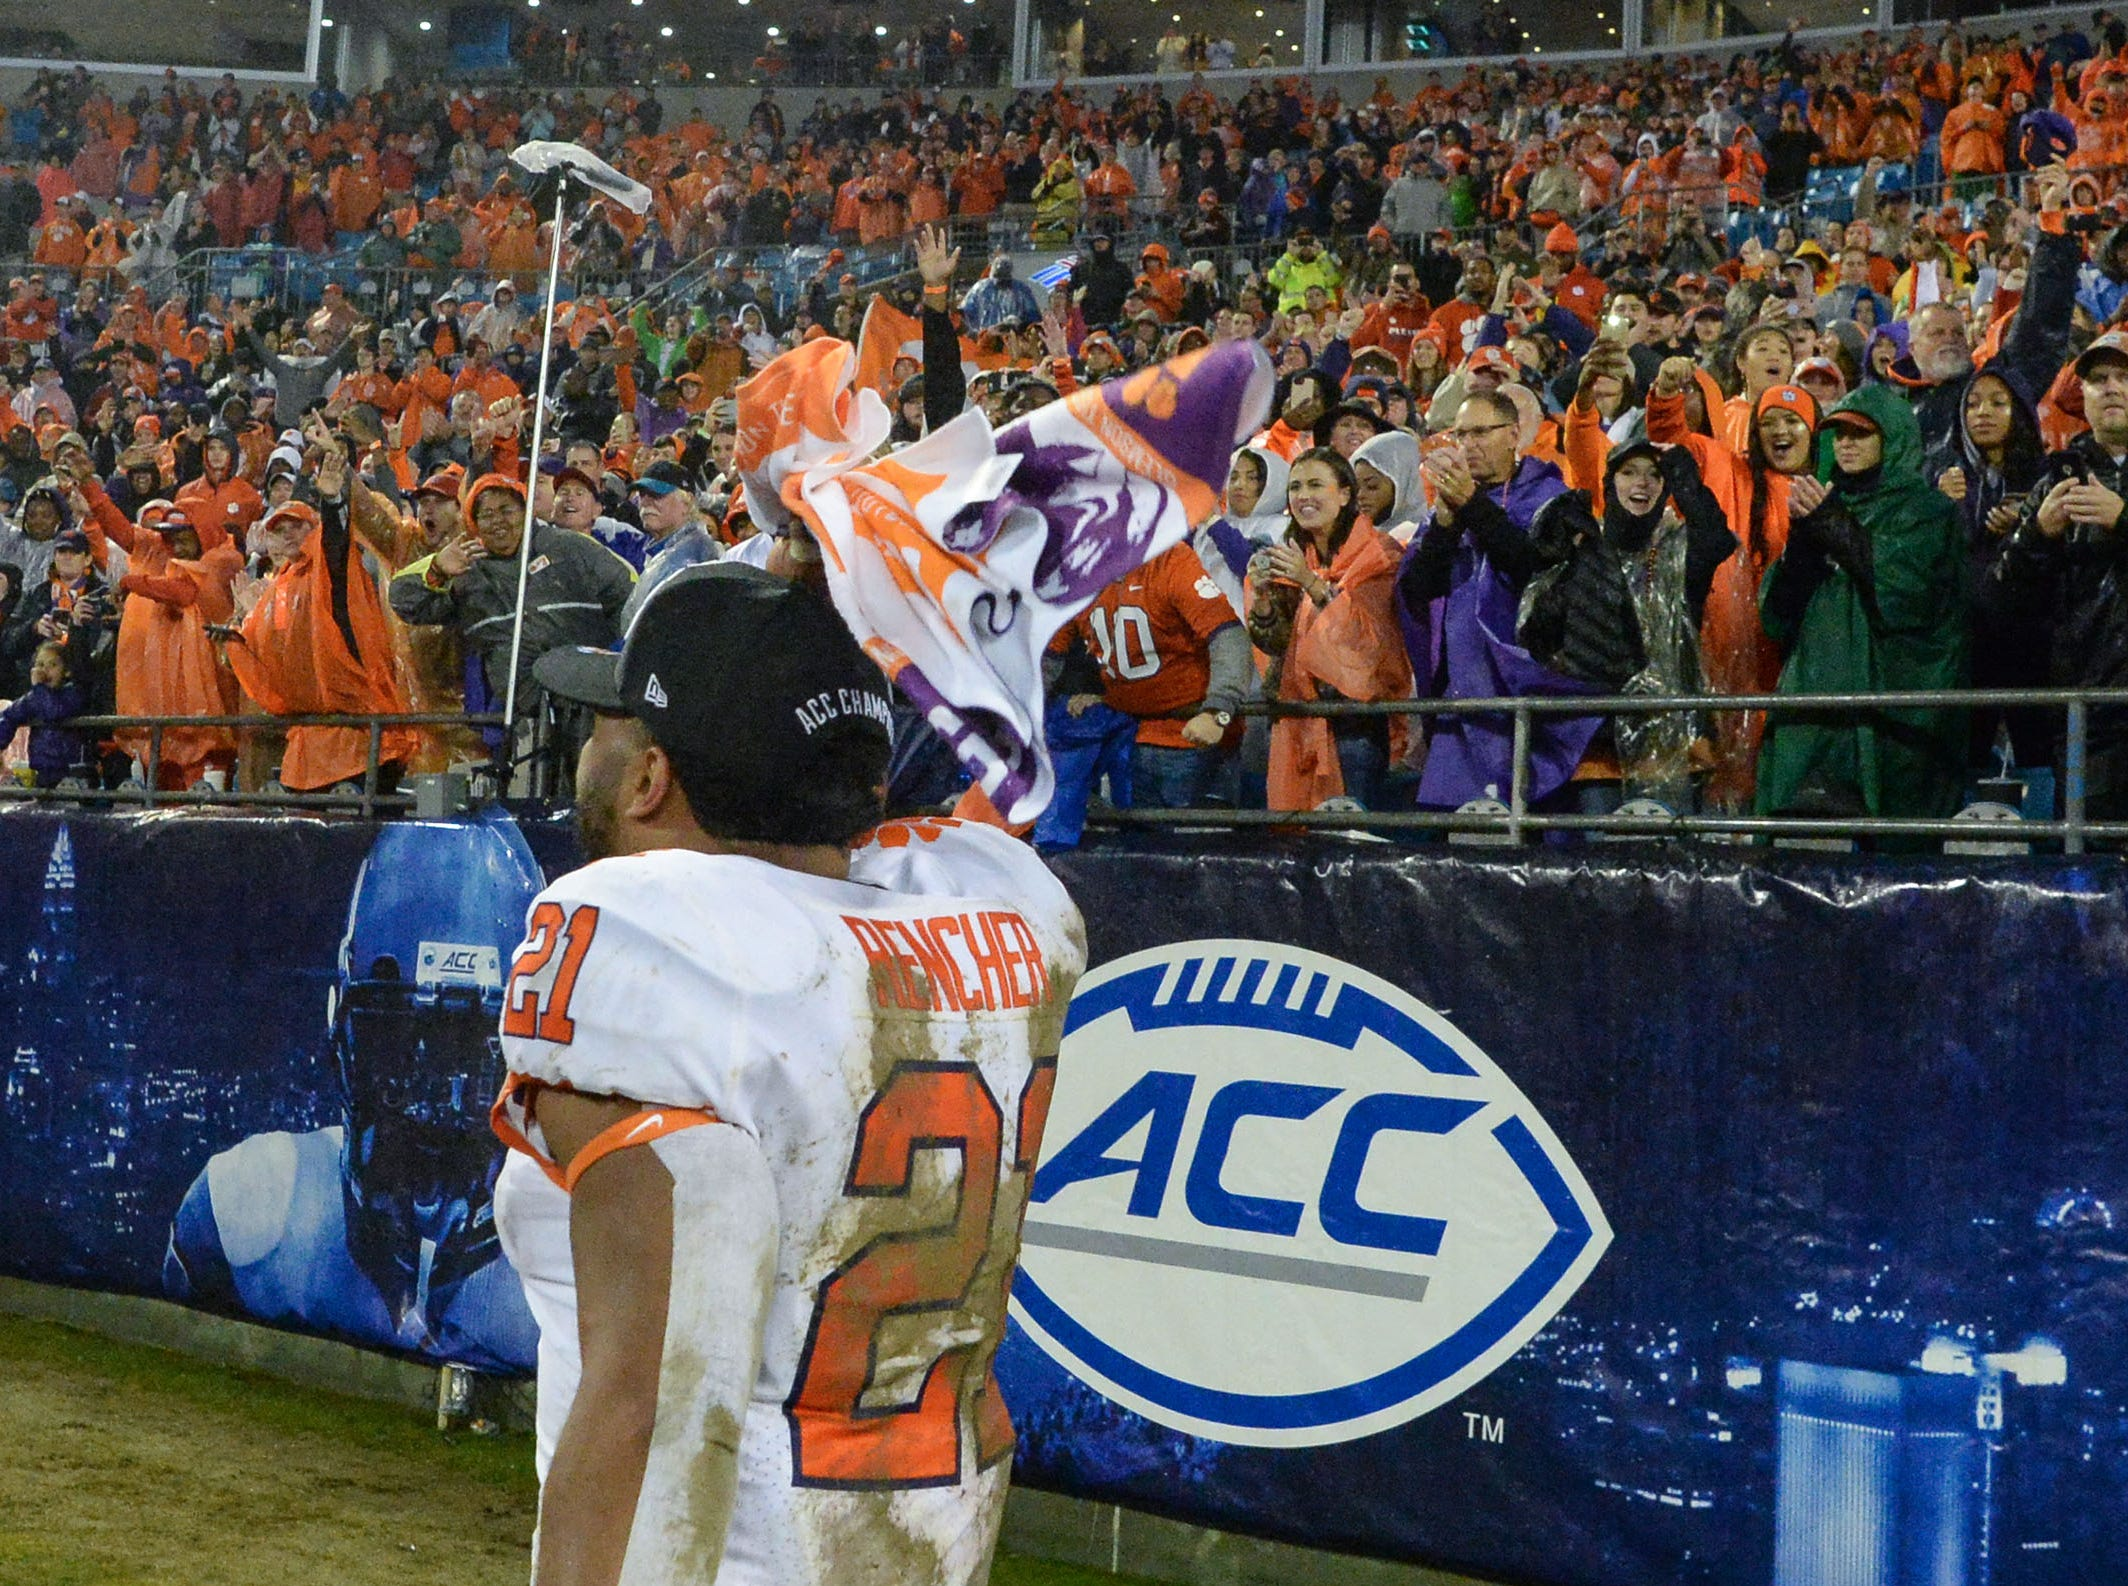 Clemson running back Darien Rencher (21) after the game at the Dr. Pepper ACC football championship at Bank of America Stadium in Charlotte, N.C. on Saturday, December 1, 2018.